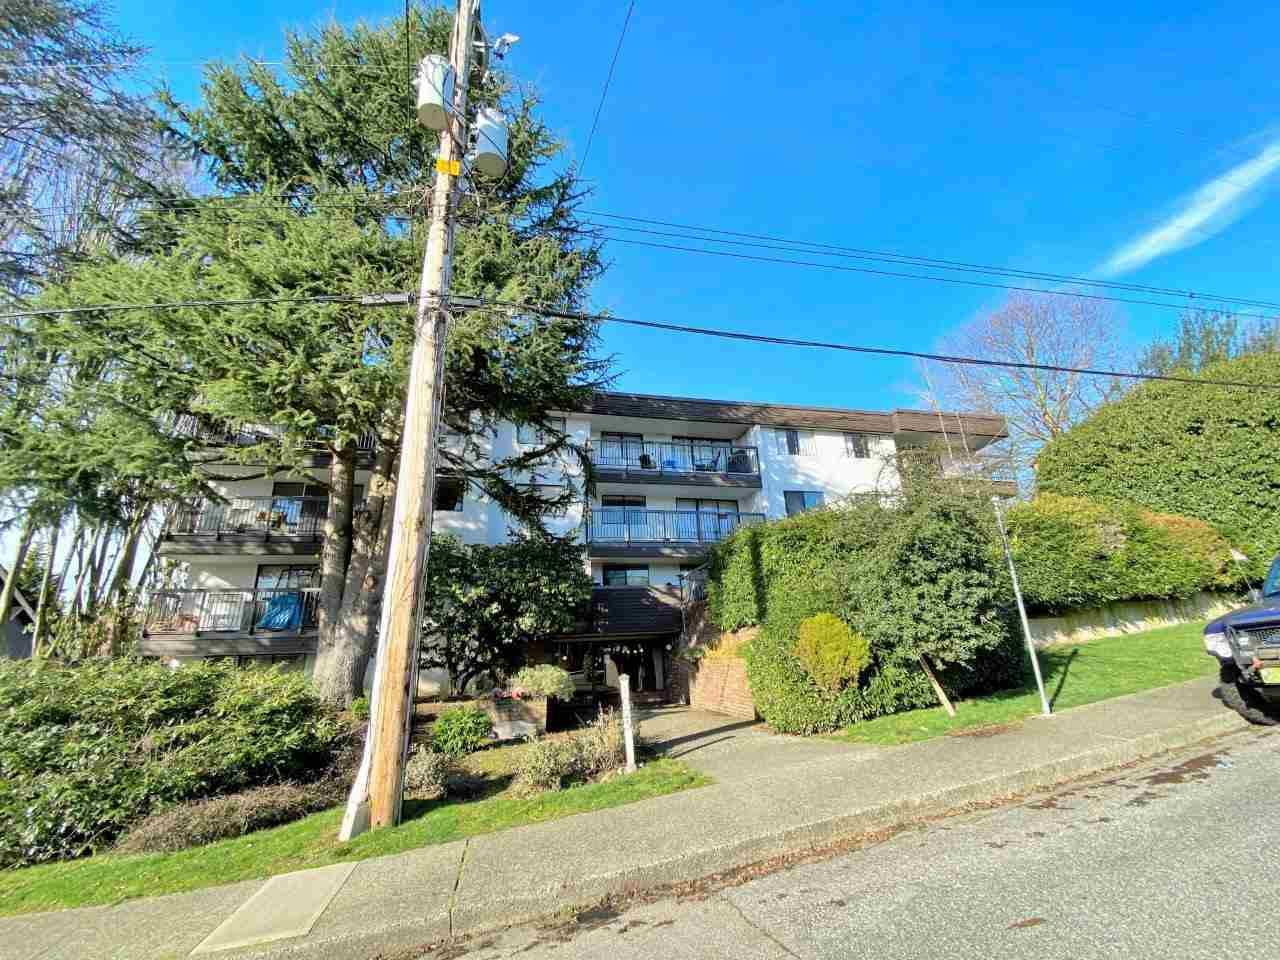 """Main Photo: 207 1025 CORNWALL Street in New Westminster: Uptown NW Condo for sale in """"CORNWALL PLACE"""" : MLS®# R2523228"""